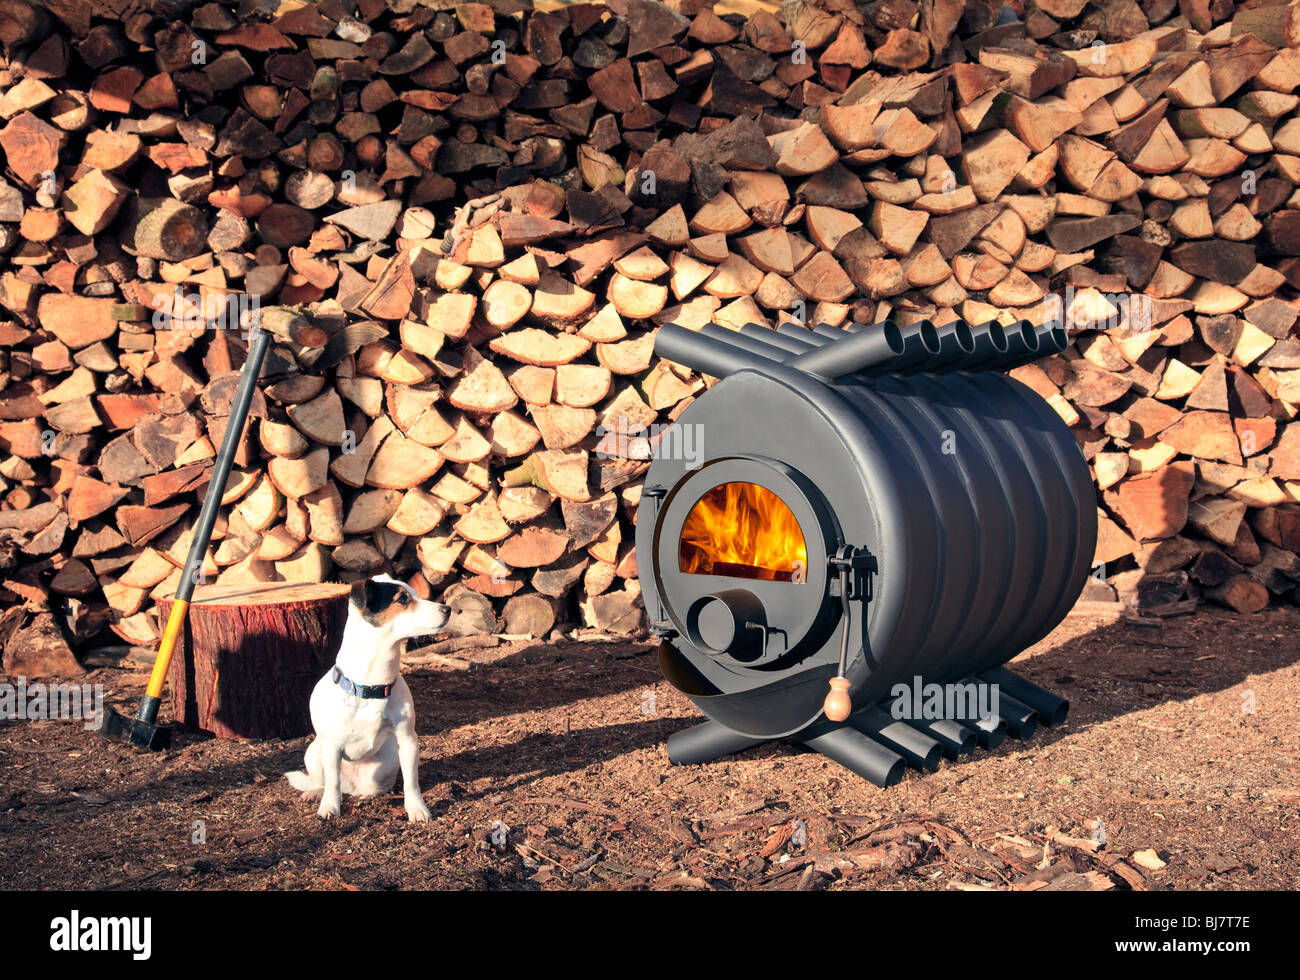 A large wood-burning stove in front of a pile of wood with a small dog in  front of it. There are flames in the stove. - A Large Wood-burning Stove In Front Of A Pile Of Wood With A Small